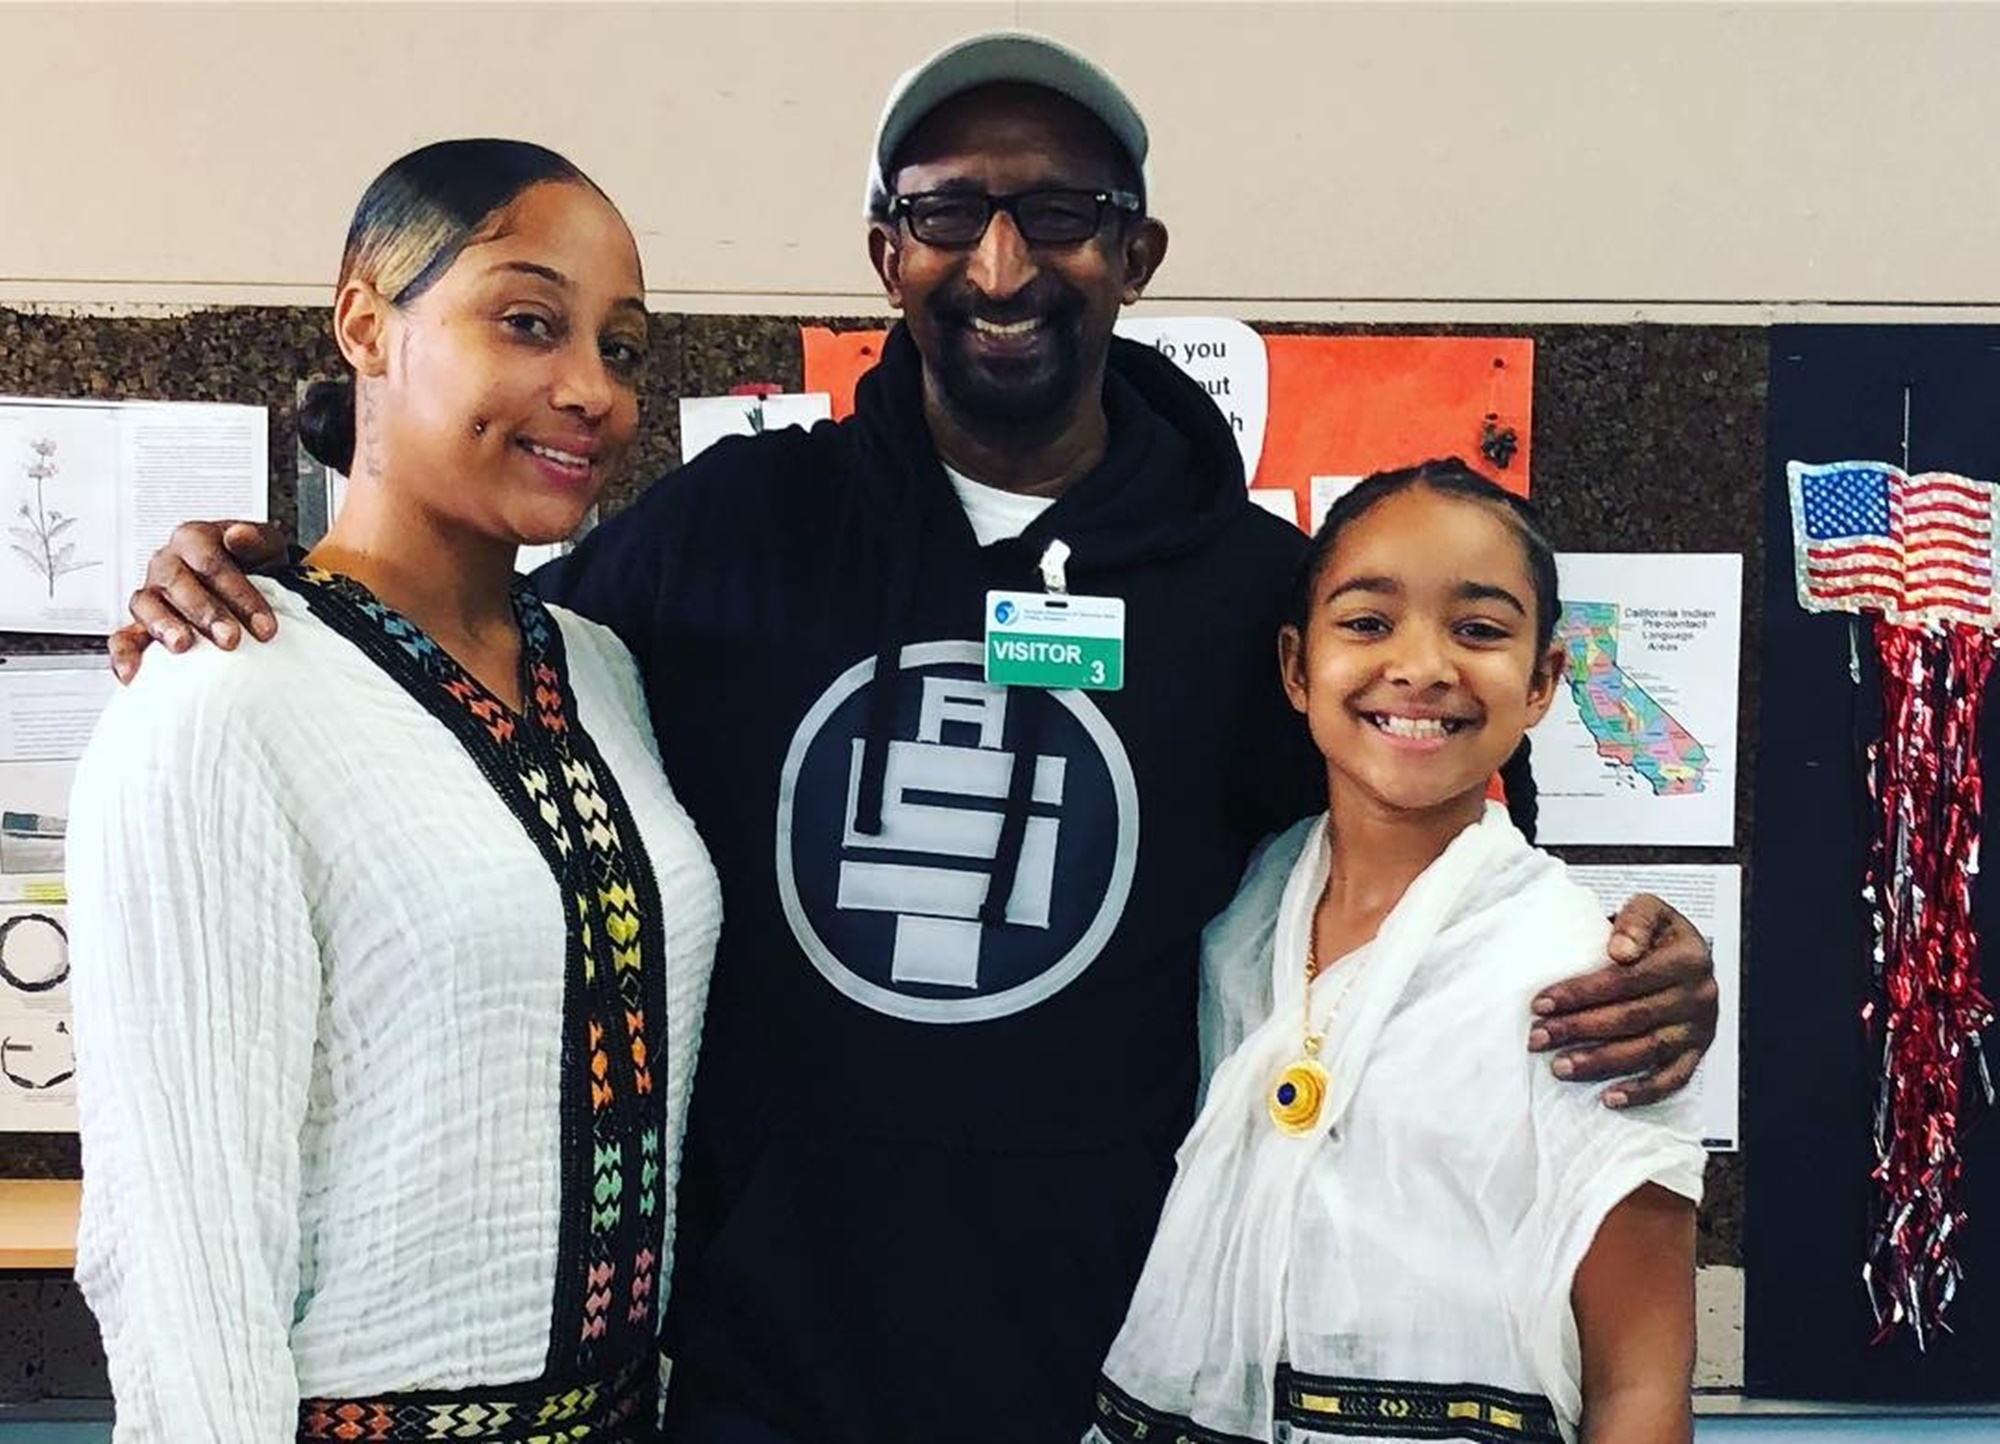 """nipsey-hussles-brother-samiel-asghedom-aka-blacc-sam-joins-fight-to-take-daughter-away-from-tanisha-foster-aka-chyna-hussle"""